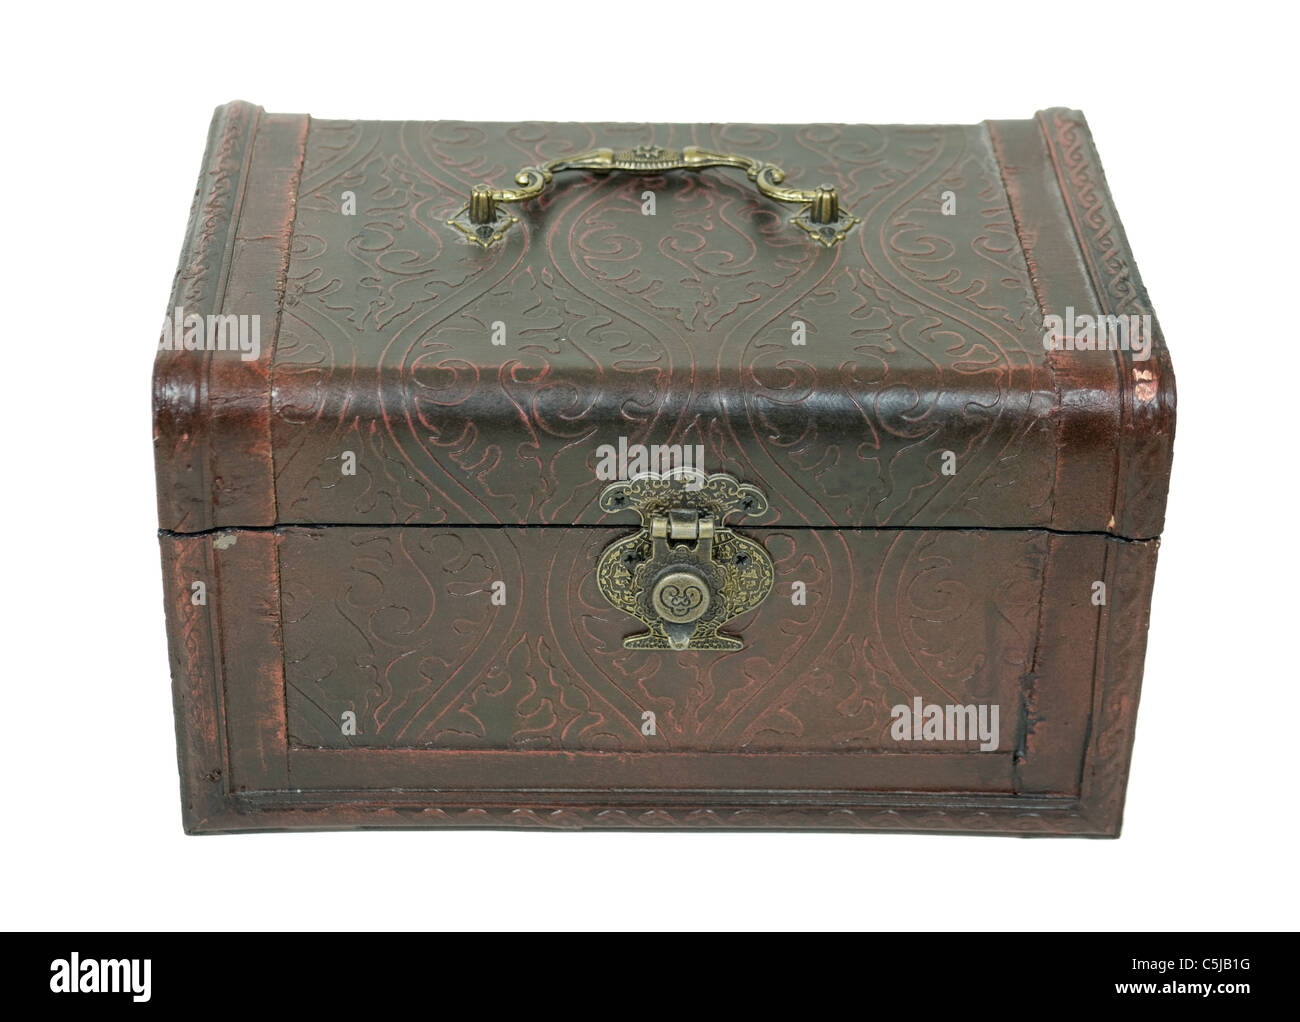 Fancy pressed leather box with antique lock used to store items - path included - Stock Image